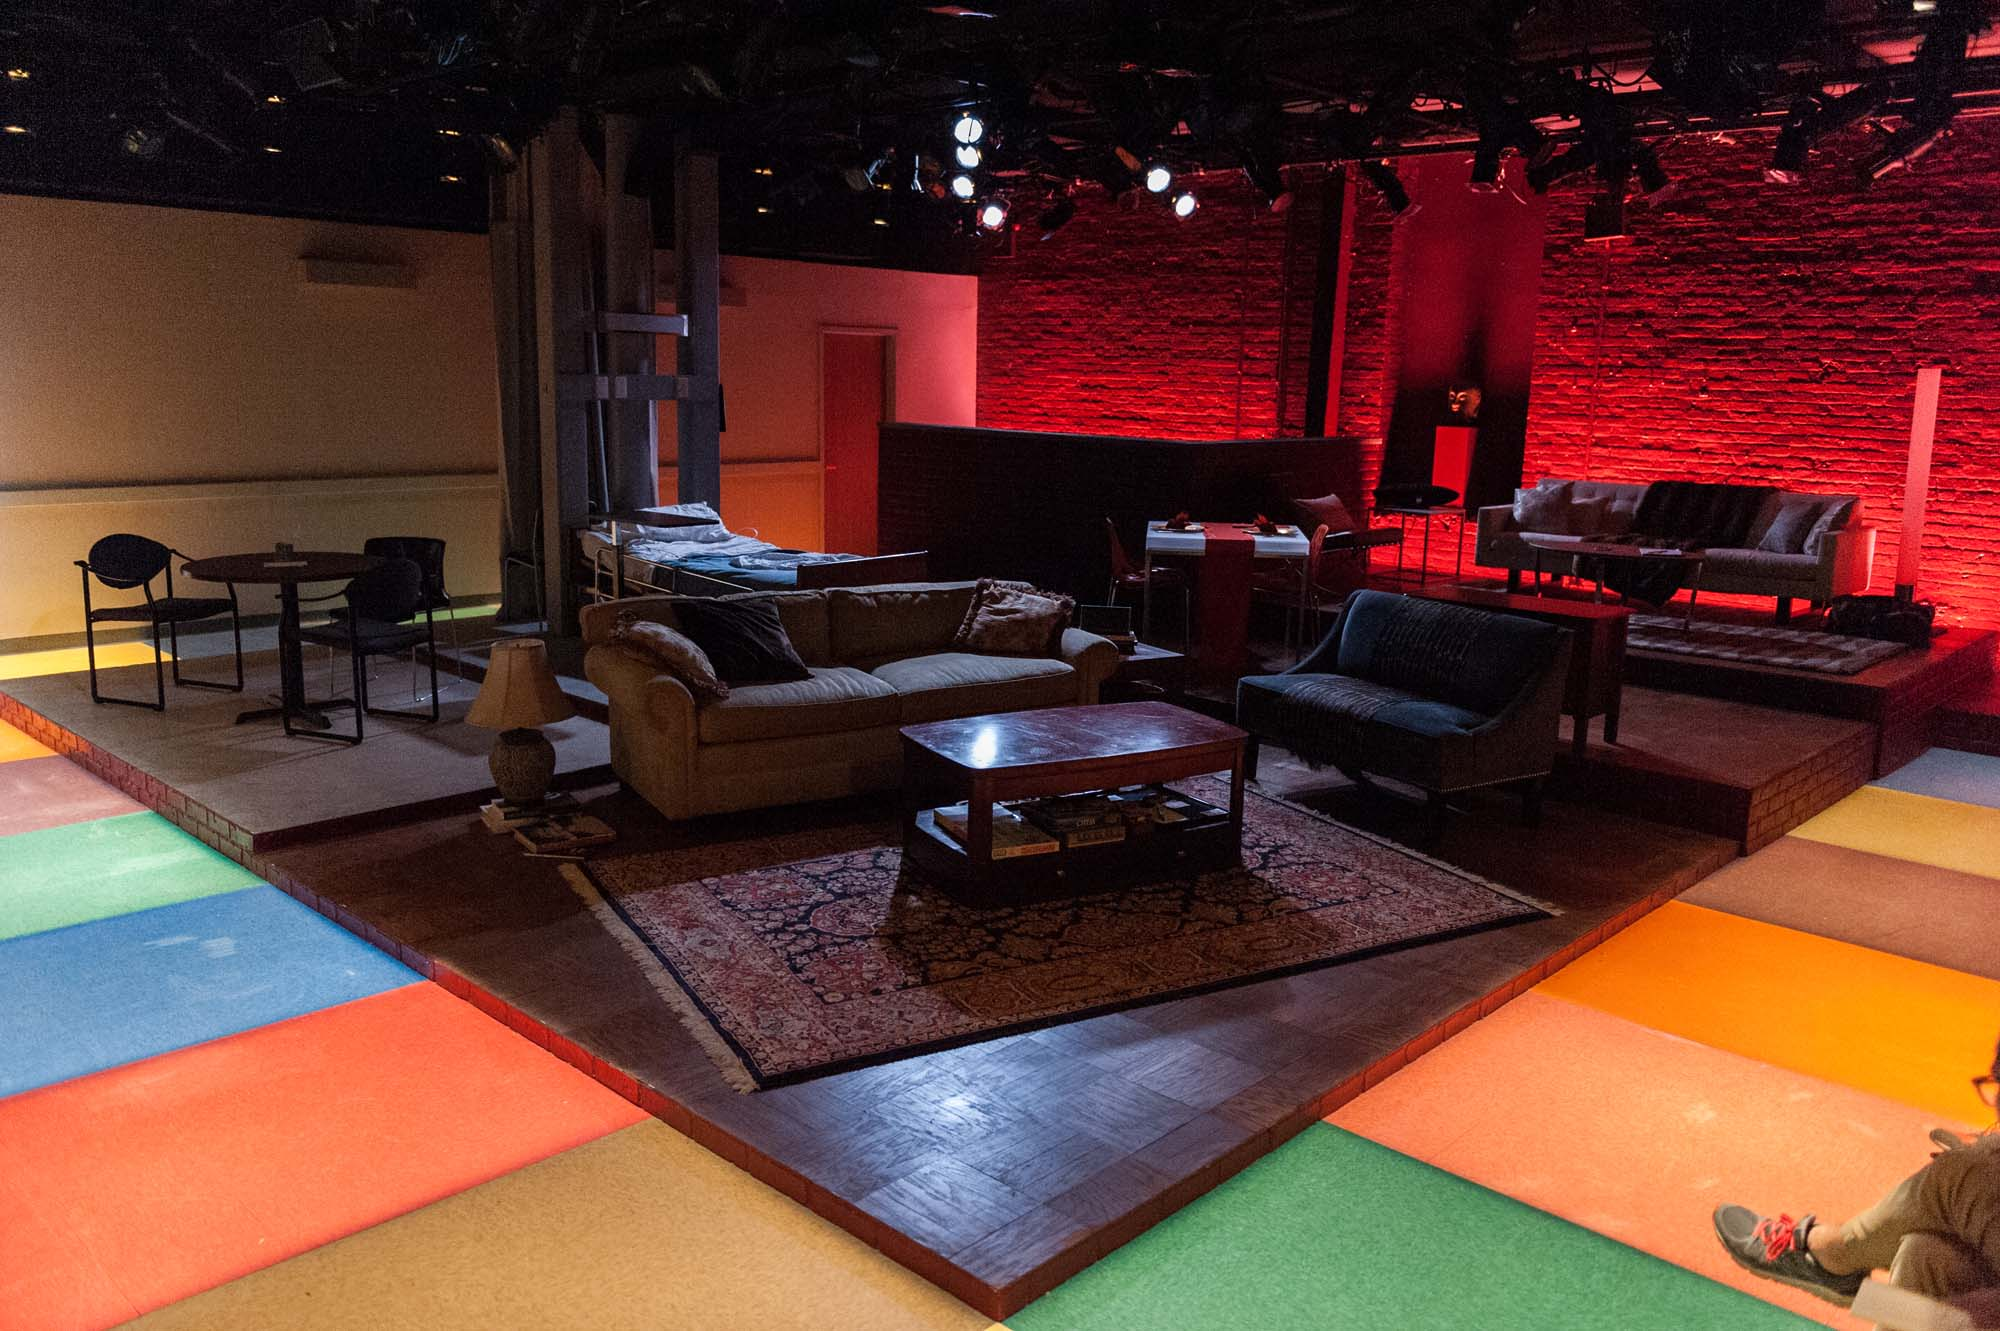 Overview of the set with the board-game hallway. Seating was on two sides of the room.